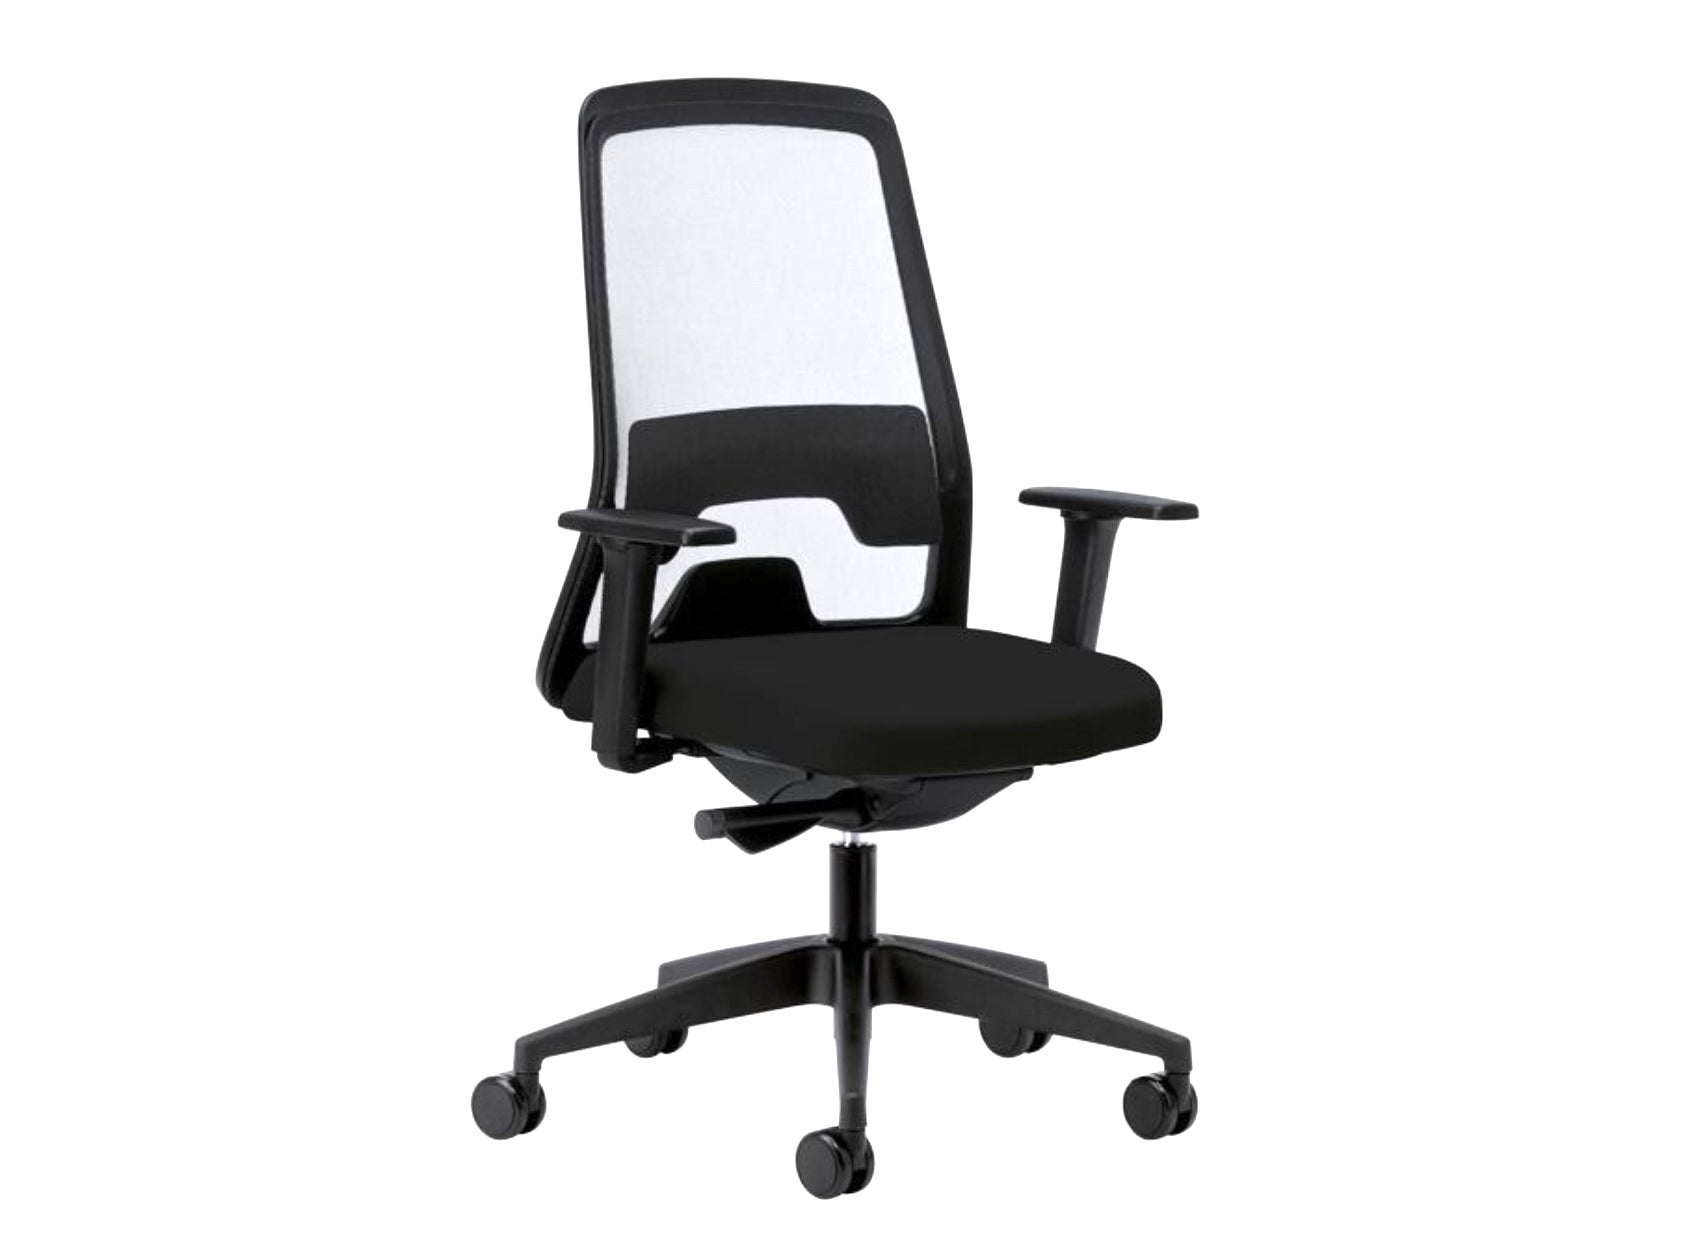 Ergonomic Chair, Armed